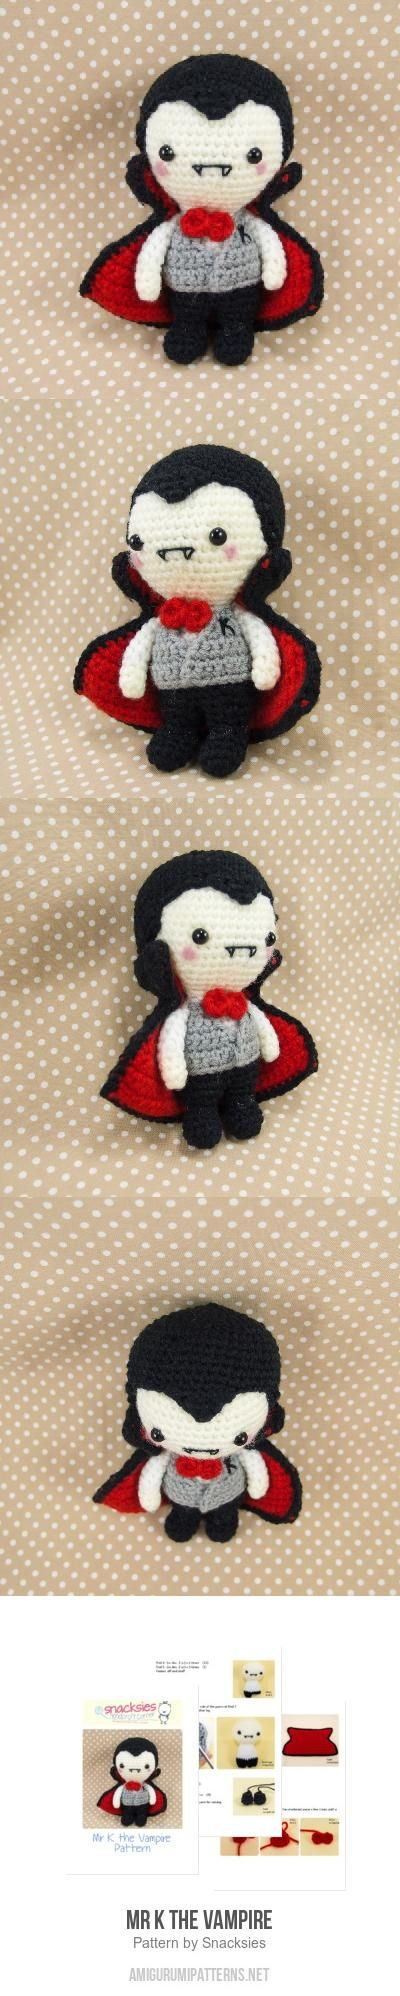 1000+ images about doll on Pinterest Amigurumi doll ...